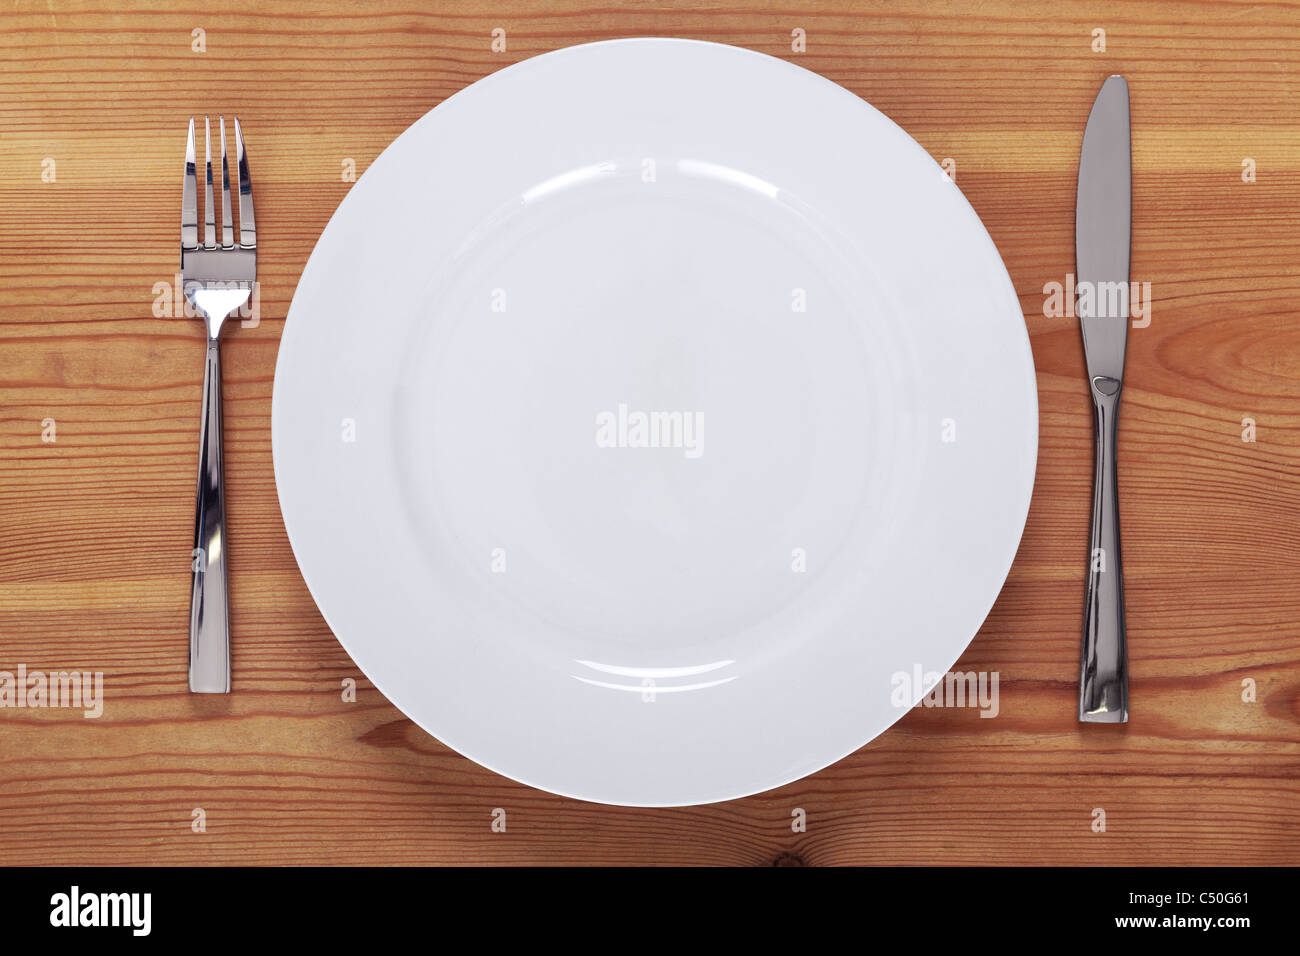 Photo of an empty white plate with knife and fork on a rustic wooden table. - Stock Image